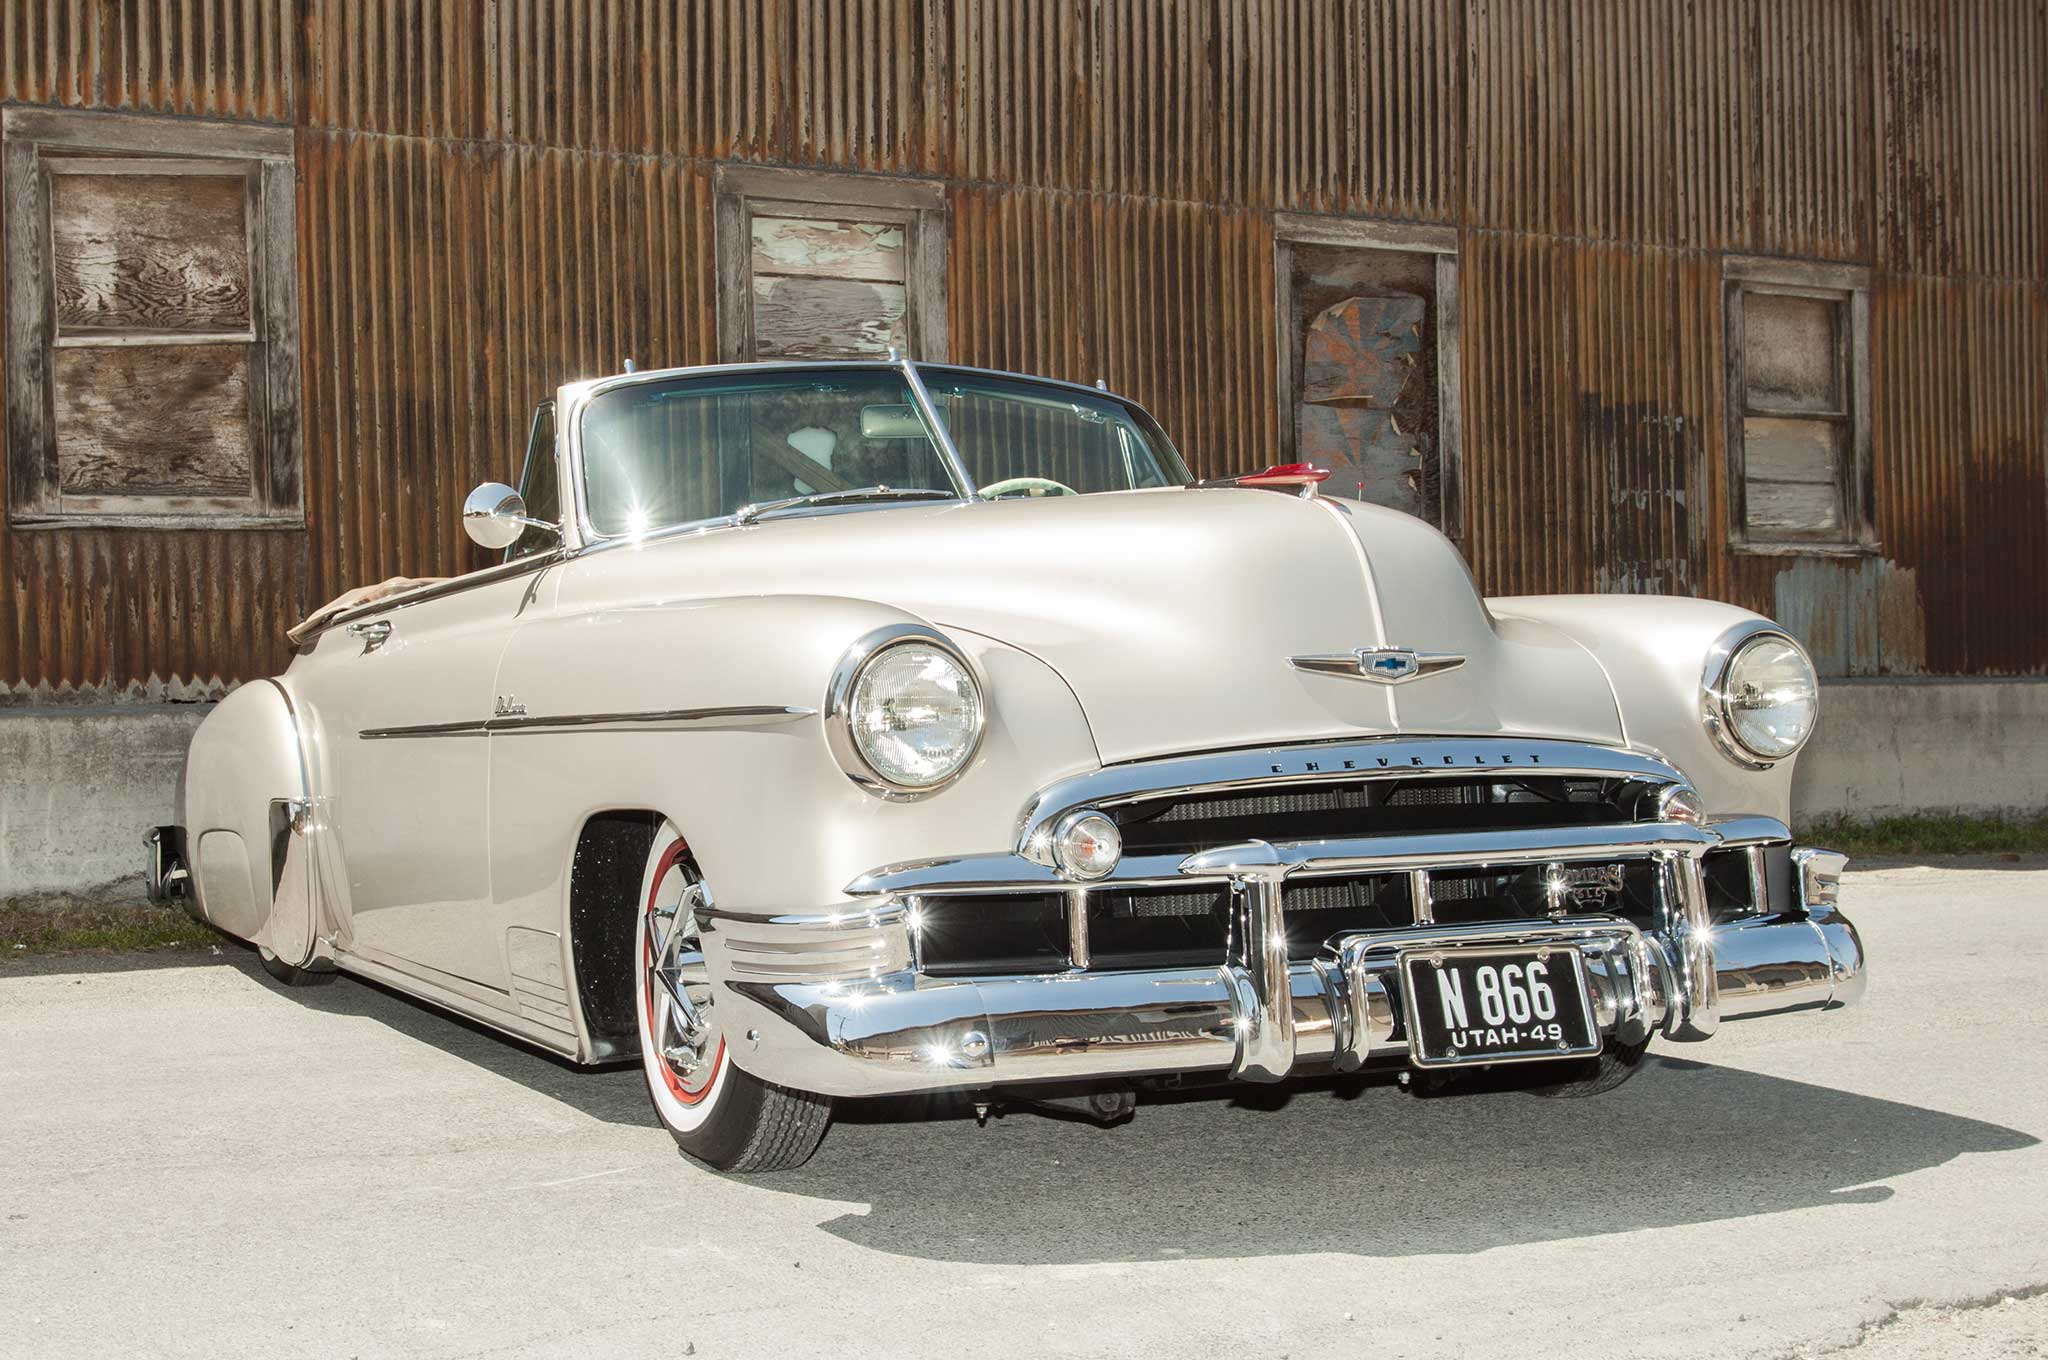 1949 Chevrolet Convertible - Post WWII Era Style - Lowrider